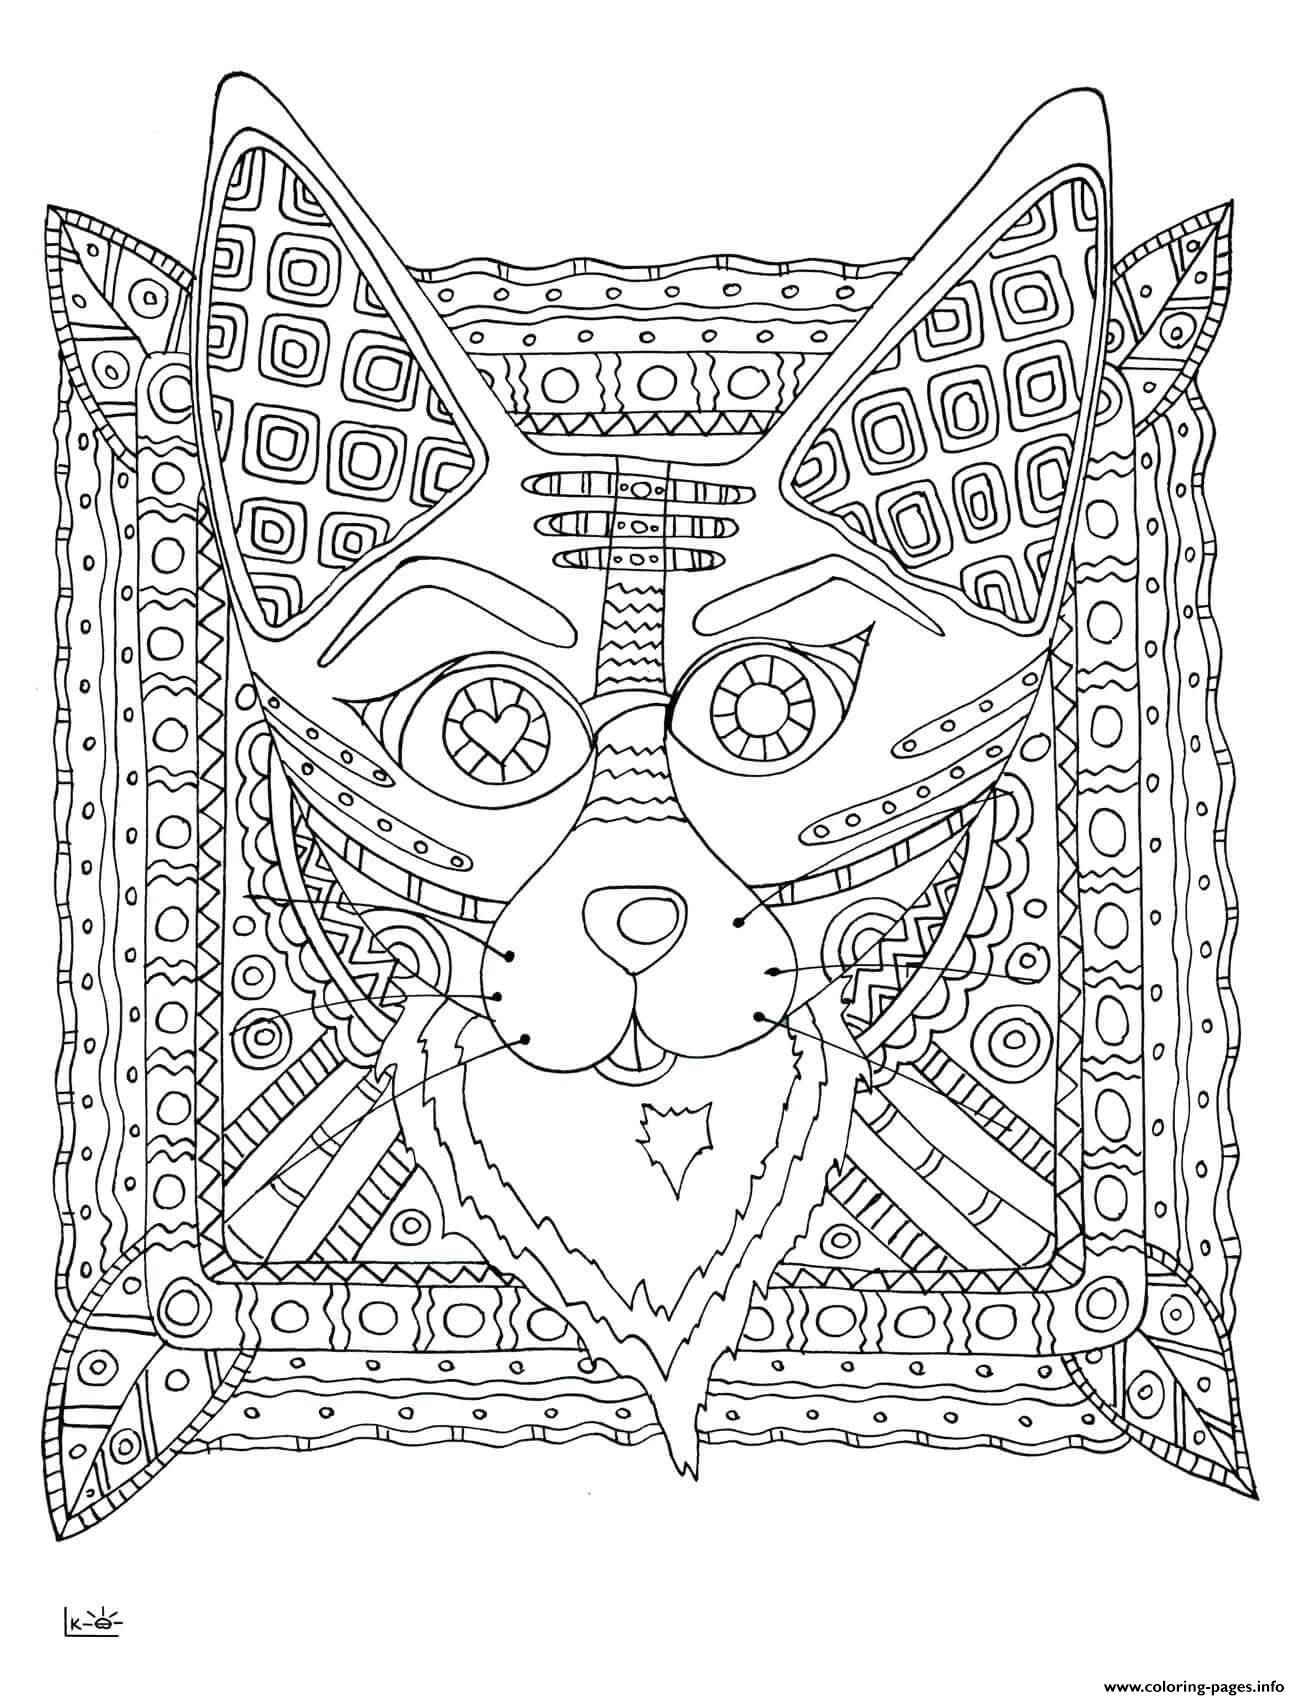 tribal animal coloring pages vector tribal decorative lizard patterned design tattoo coloring animal pages tribal